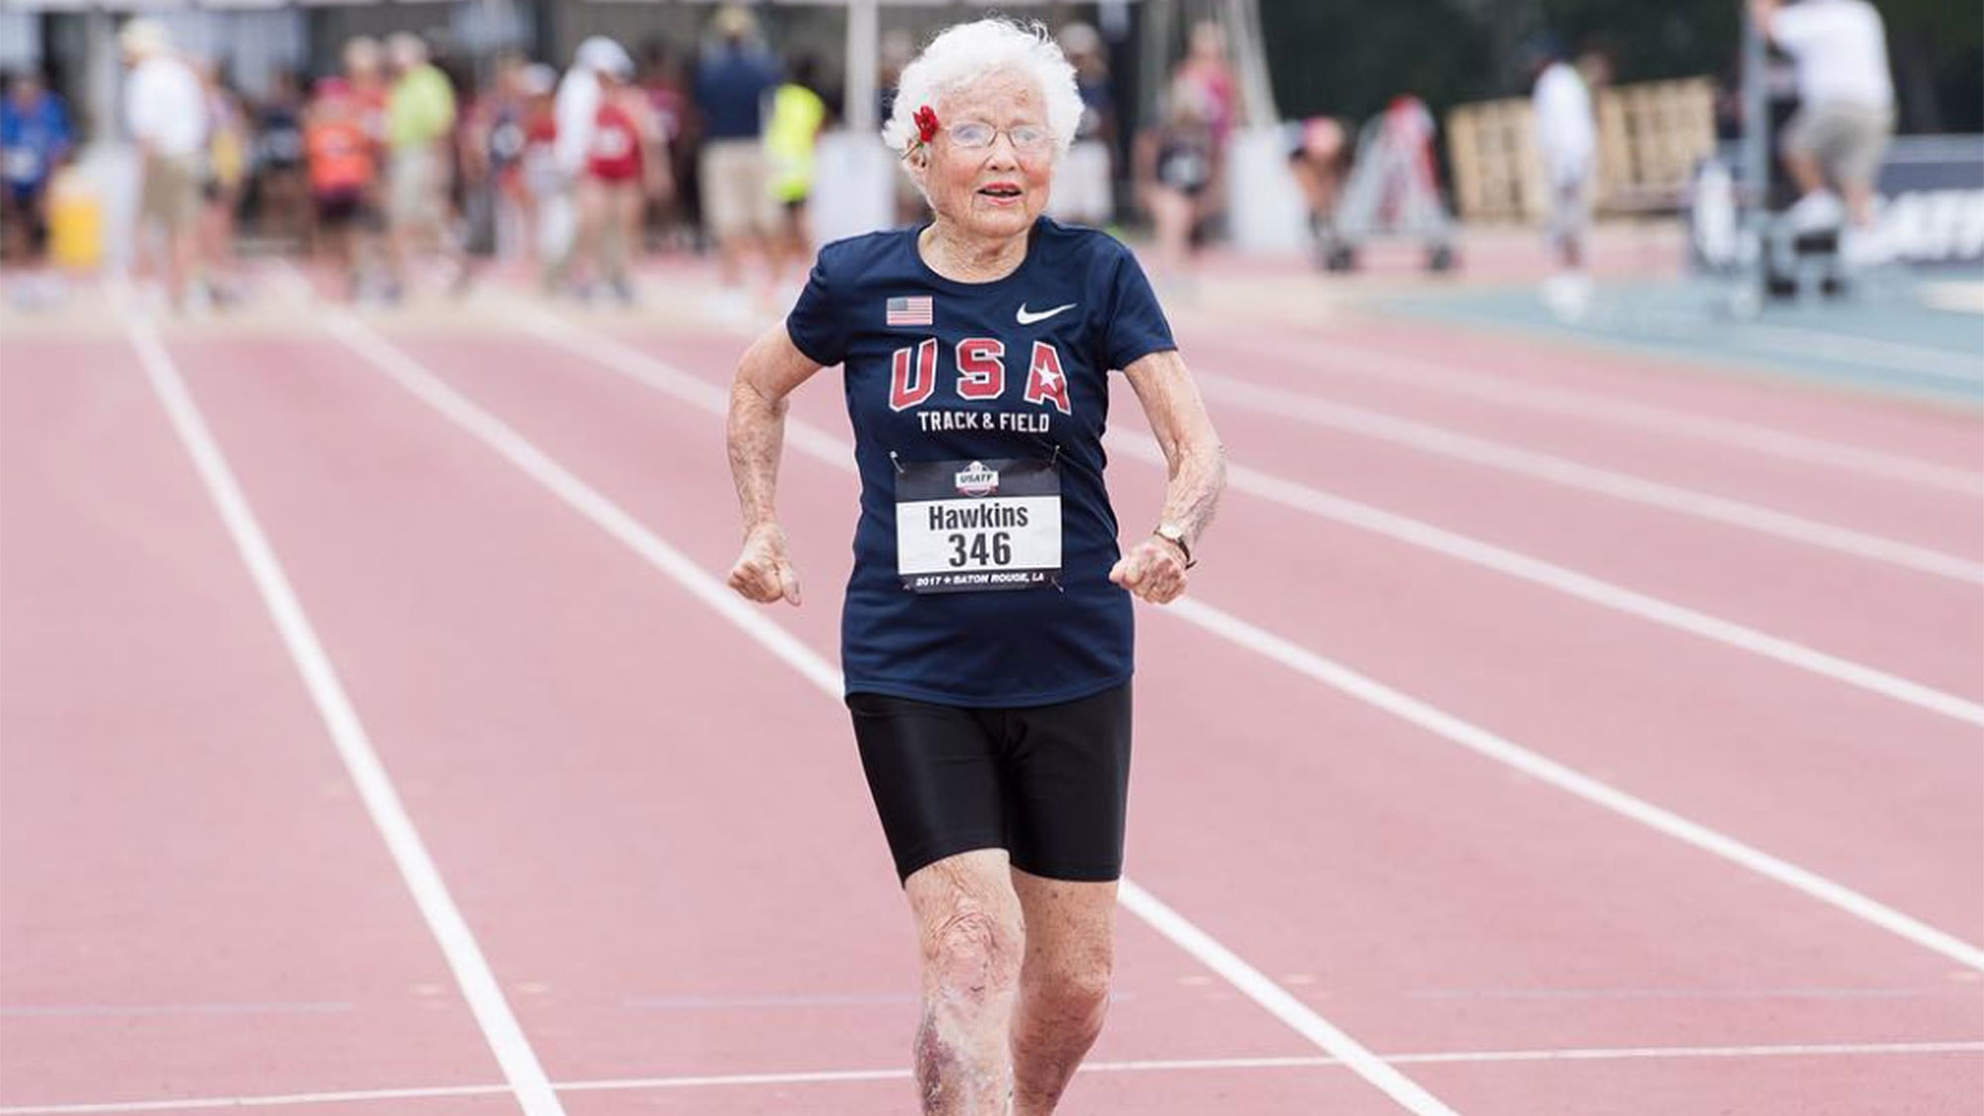 101-Year-Old Woman Breaks 100-Meter Record for Her Age Group — and Only Started Racing Last Year